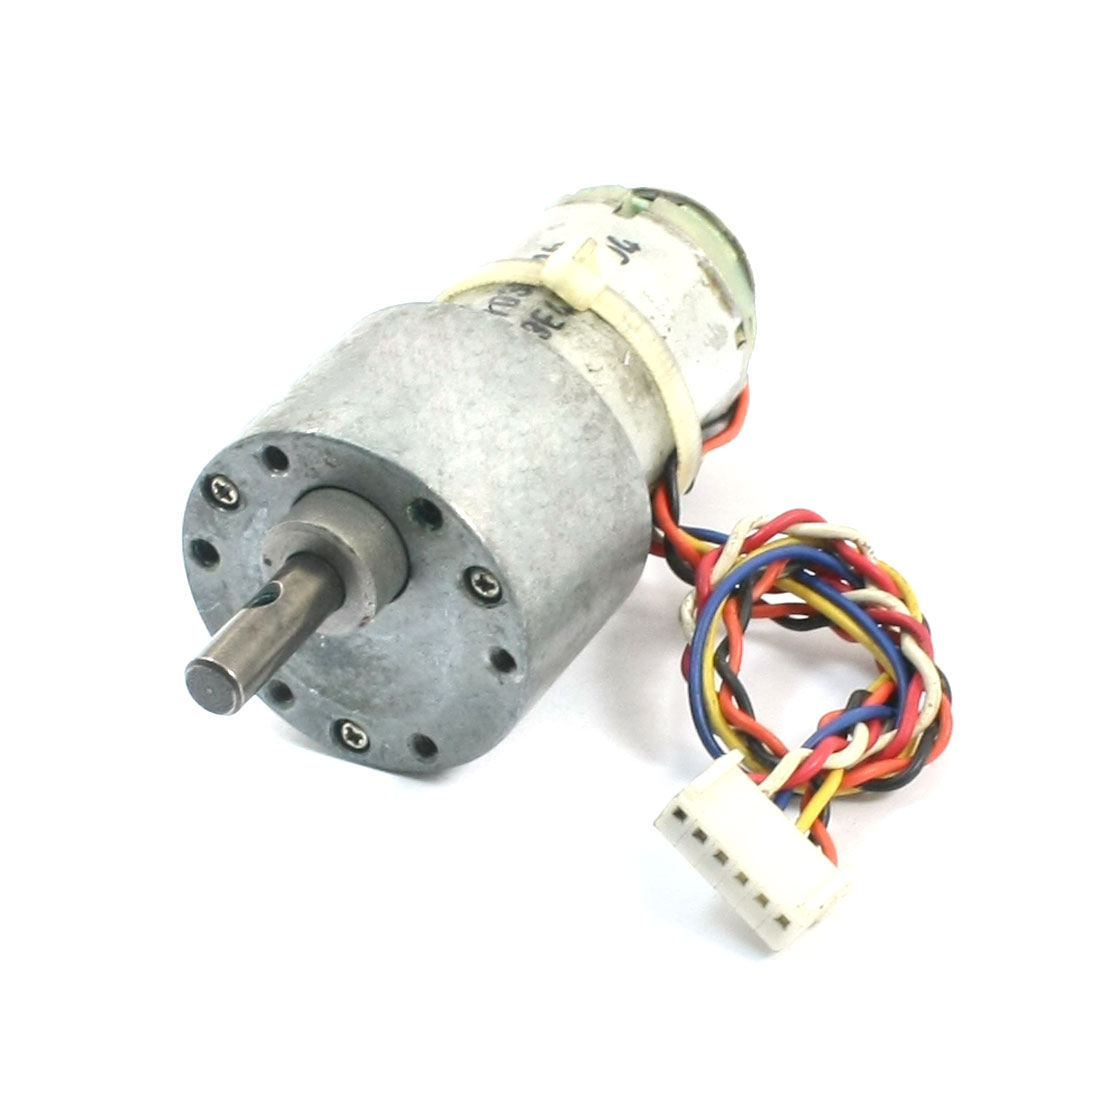 DIY Assembly 24V 3000RPM High Torque Electric DC Geared Box Motor